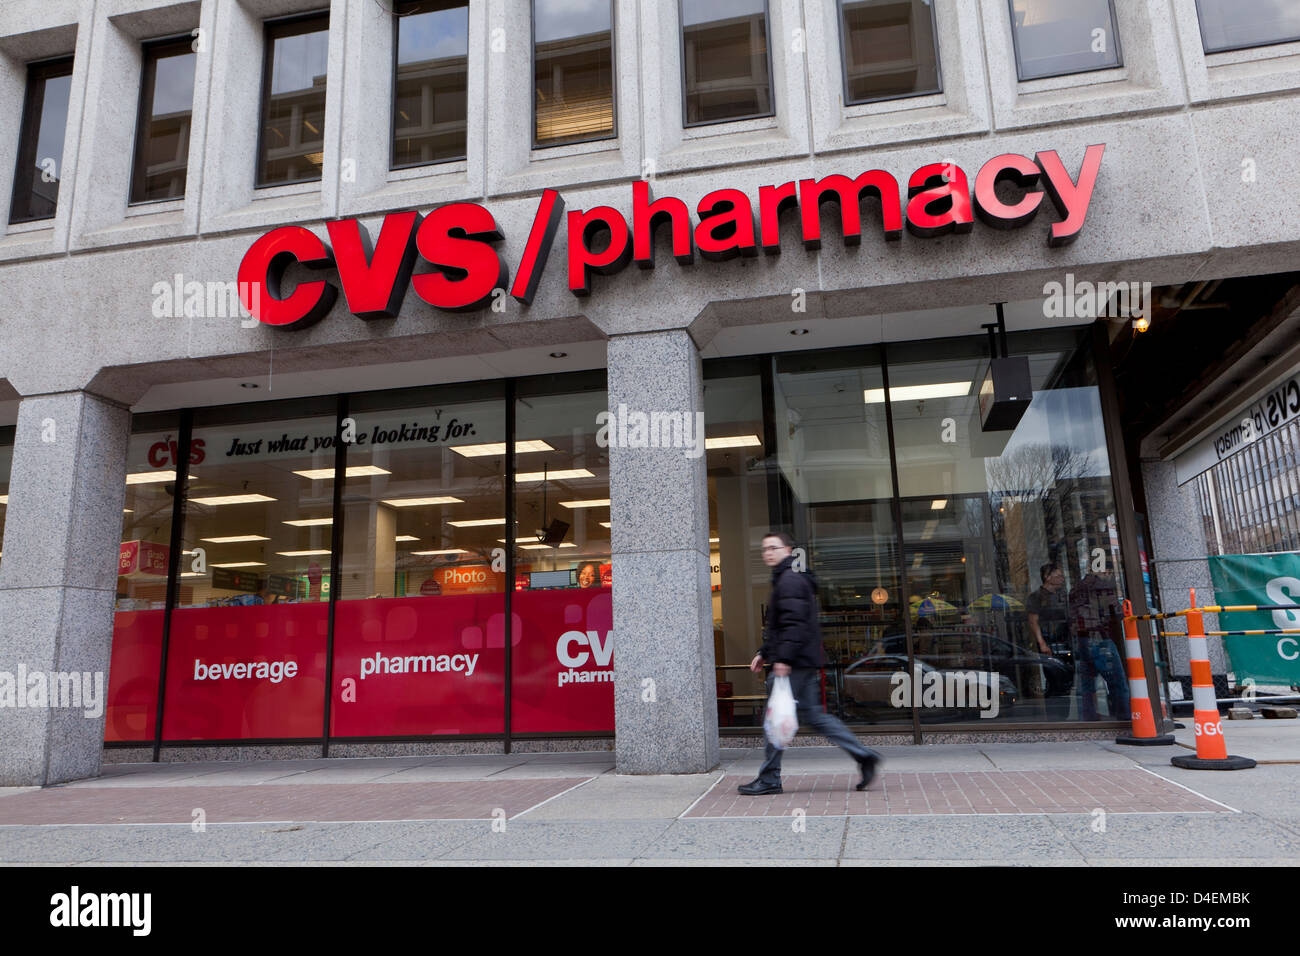 cvs pharmacy storefront stock photo  54413063